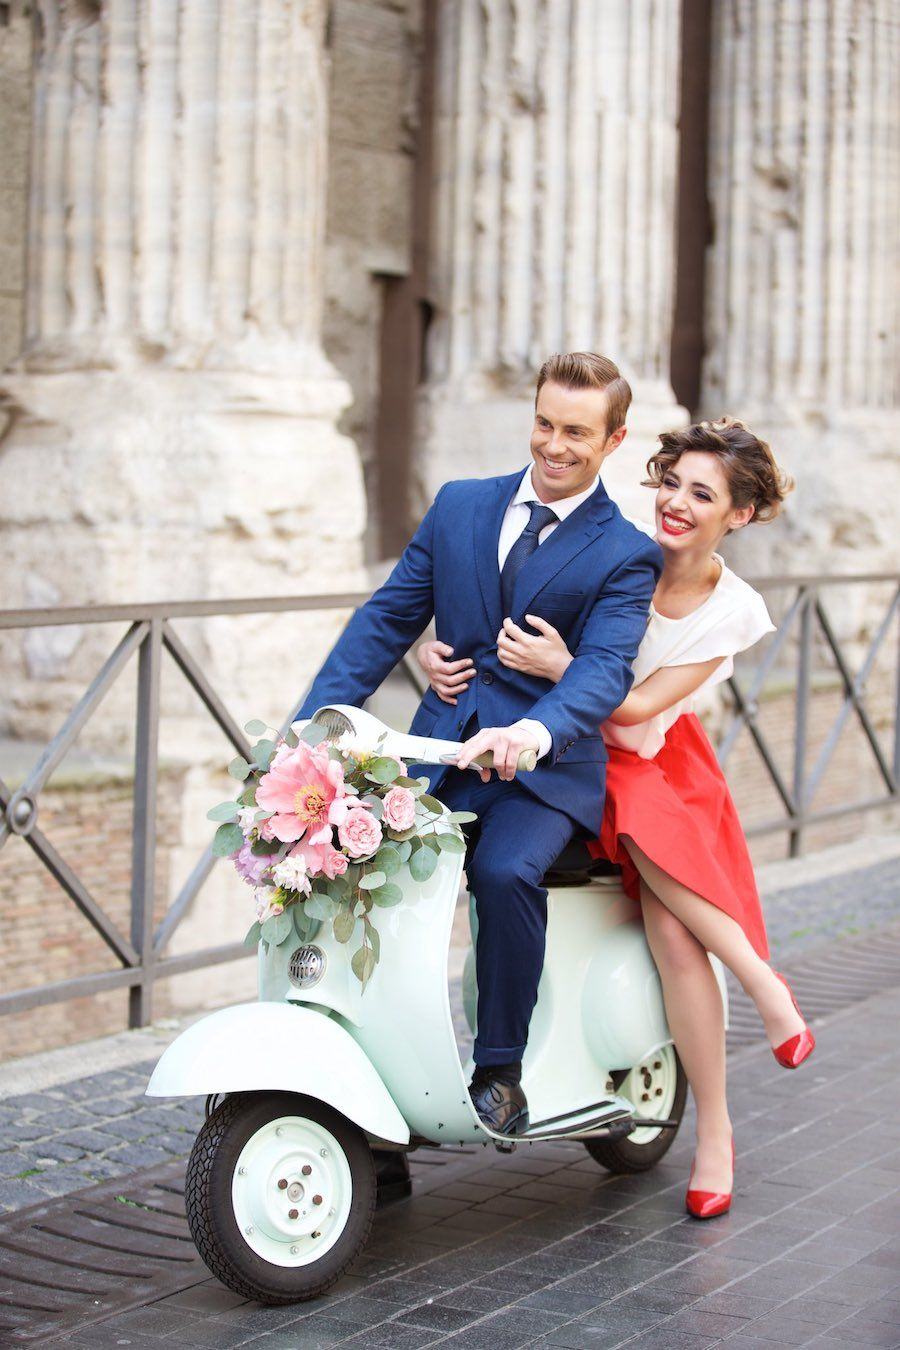 Matrimonio In Vespa : Un engagement session ispirata a vacanze romane vespa scooters